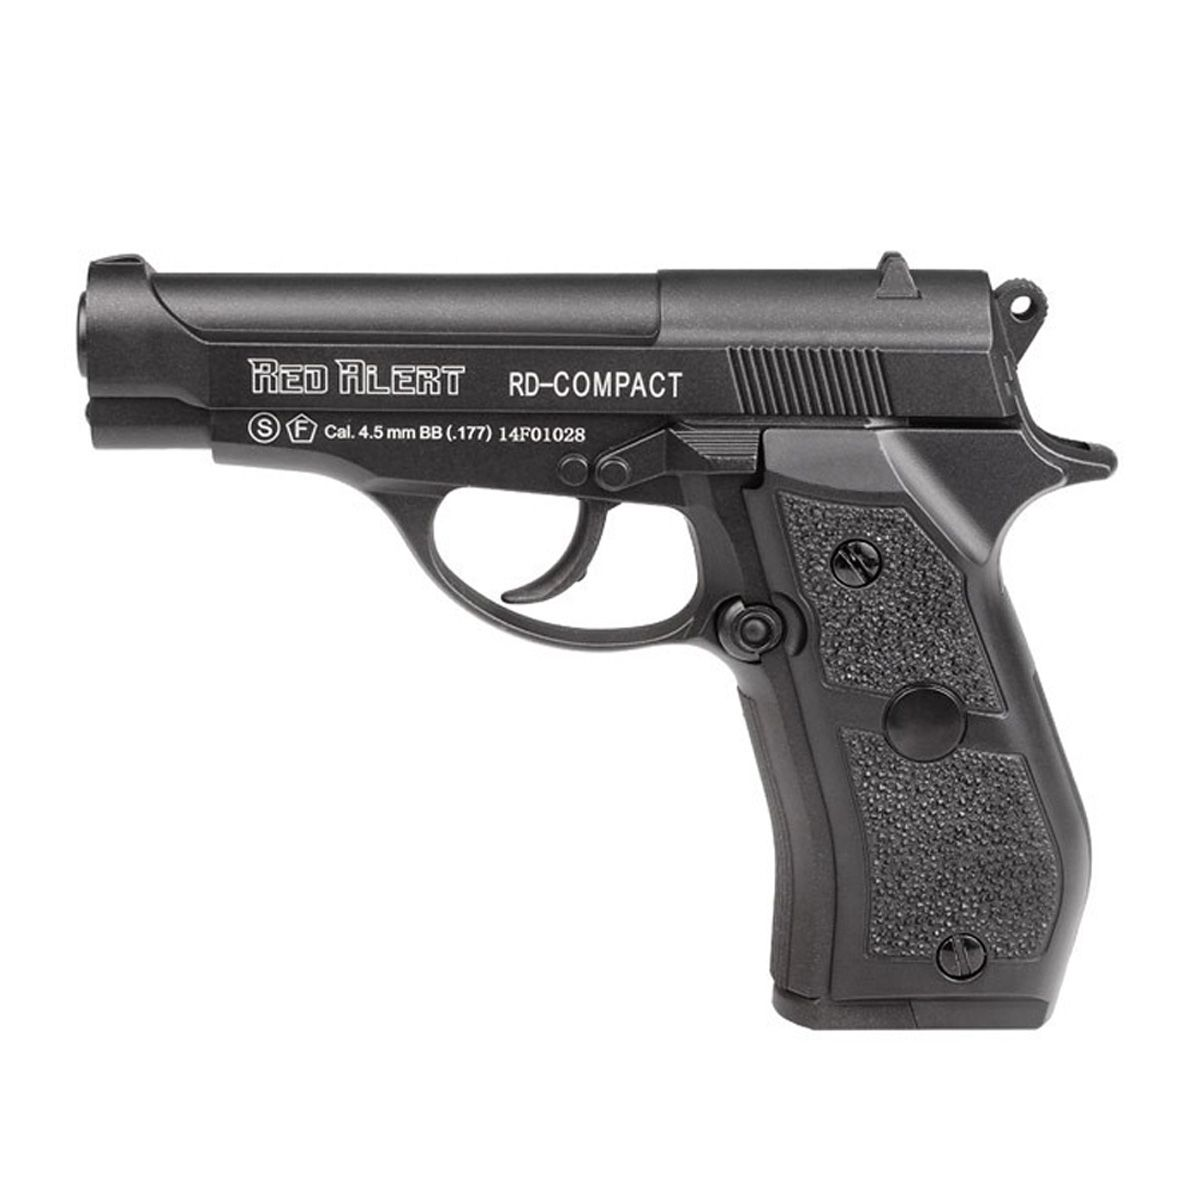 Pistola de Pressão CO2 Gamo Red Alert Compact BBs 4,5 mm